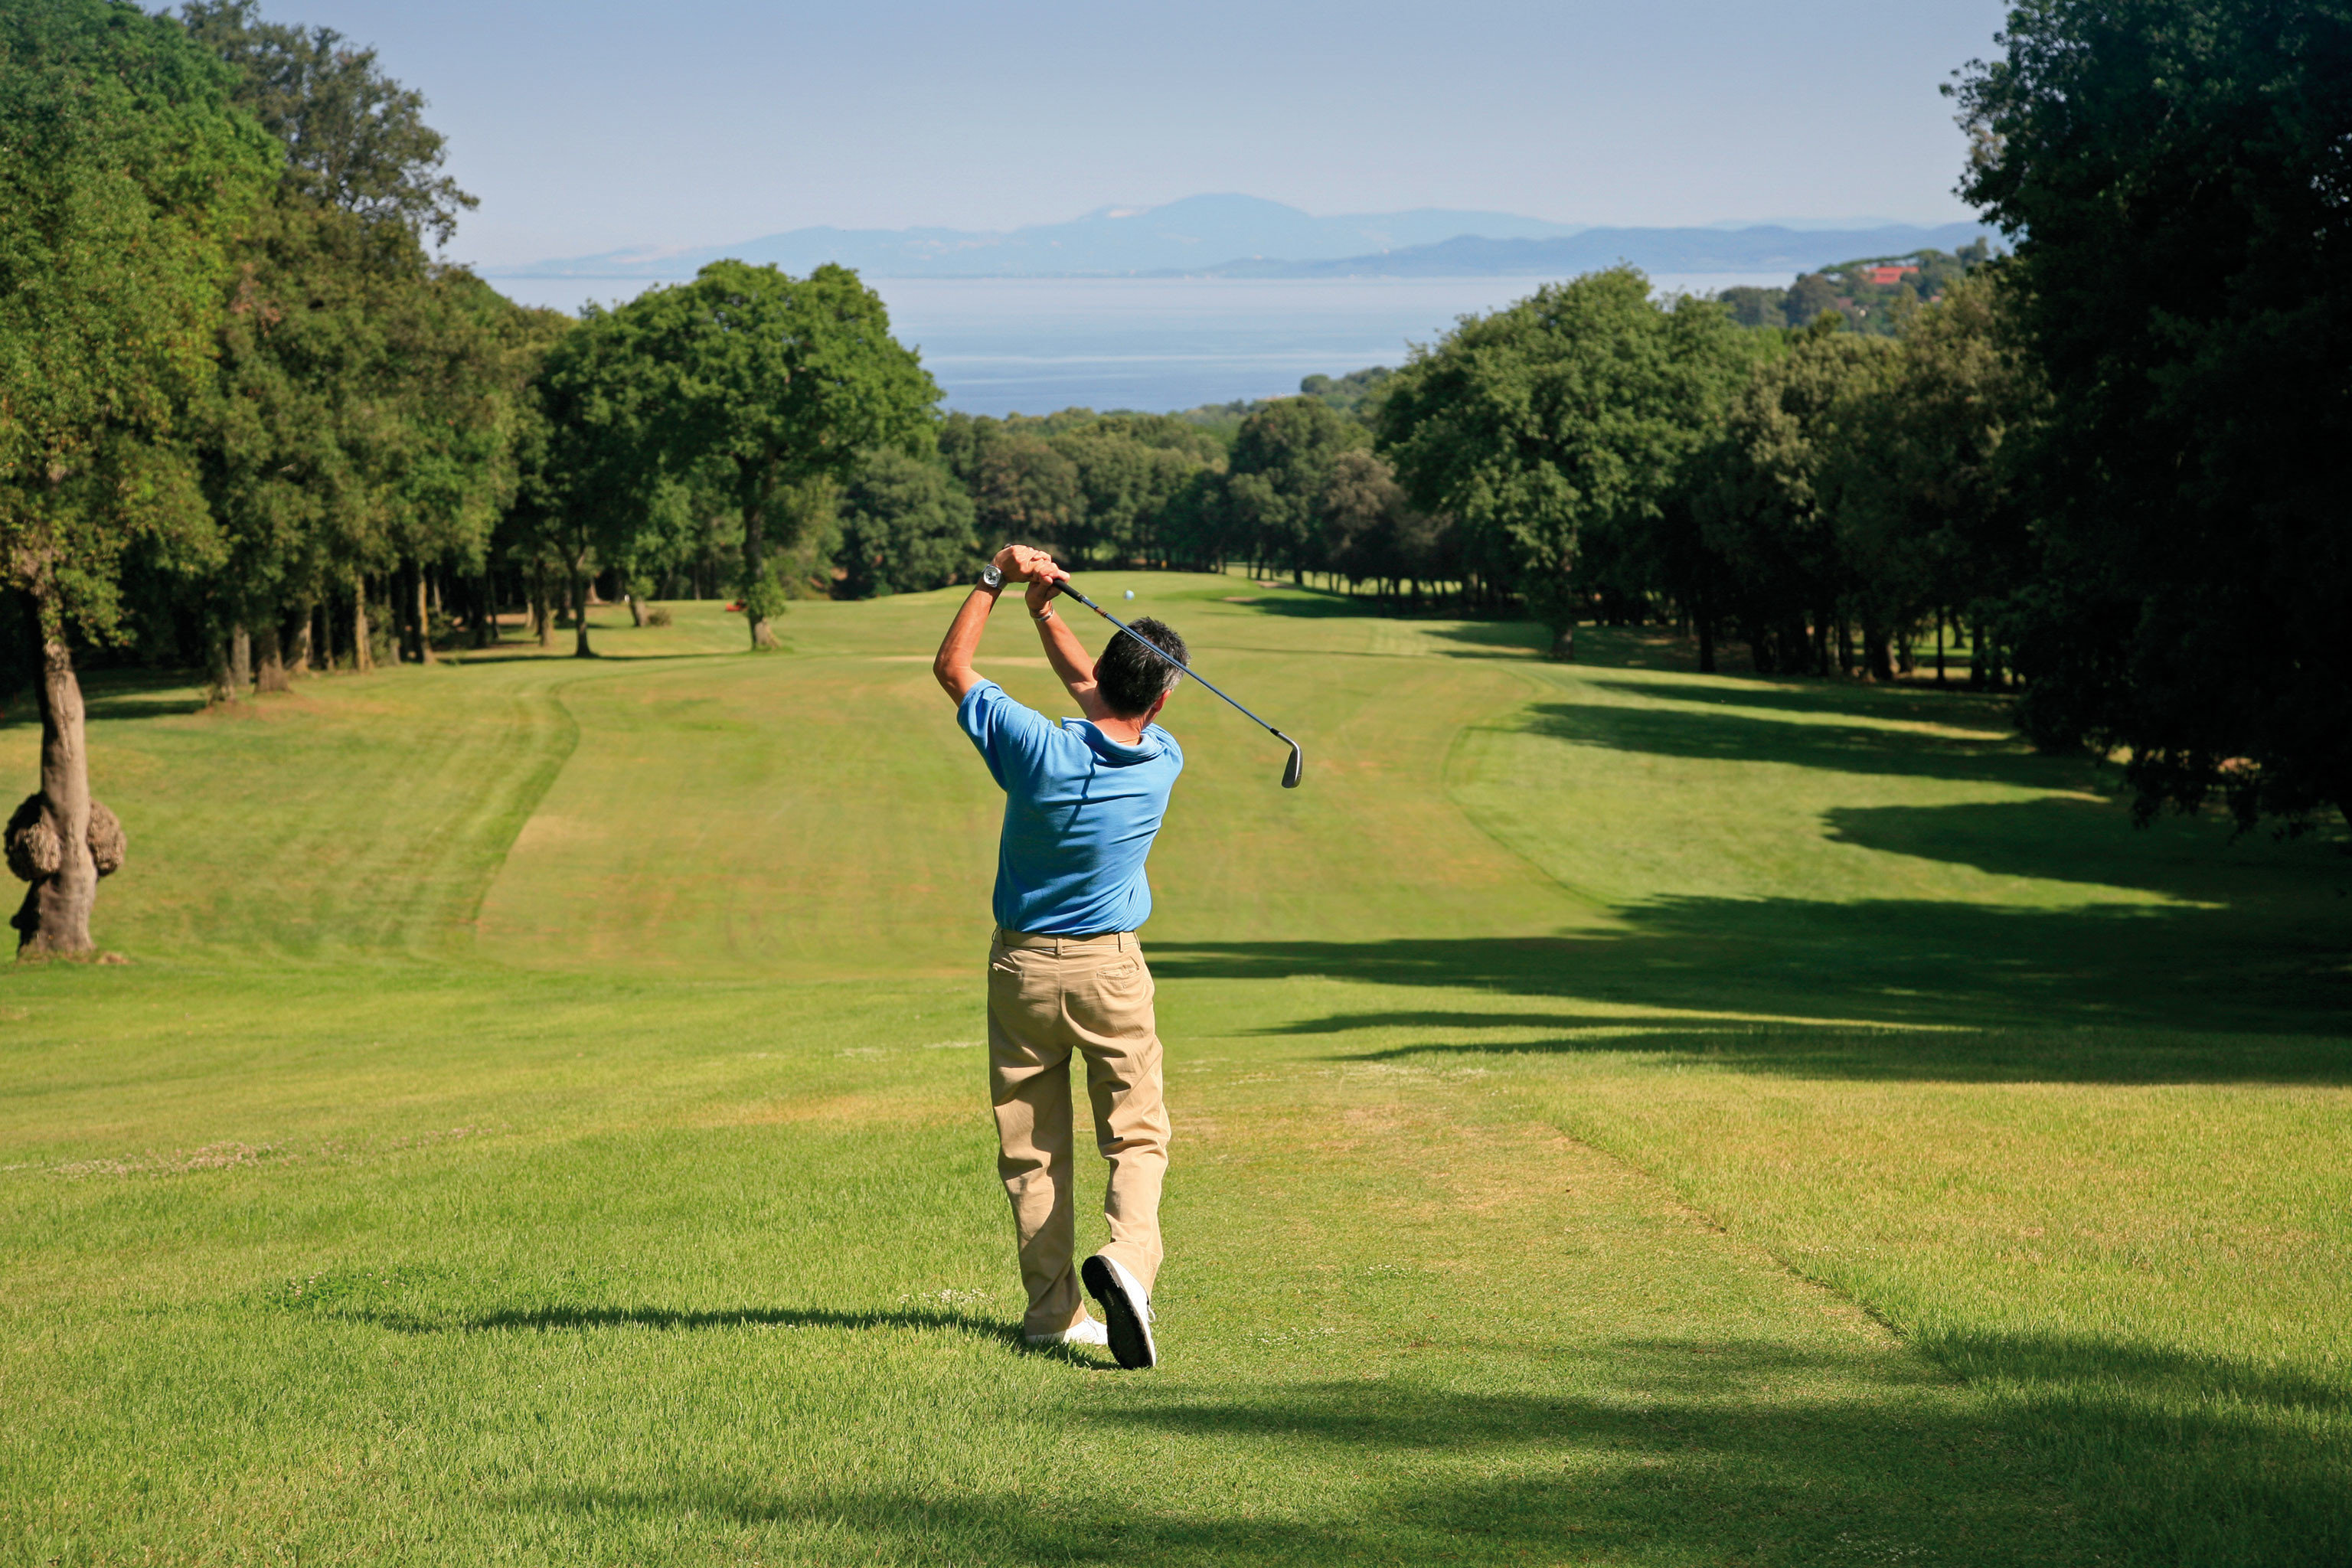 Golf Nature Outdoor Activities Outdoors Sport grass tree sky athletic game field sports structure ball game leisure pitch and putt sport venue recreation grassy outdoor recreation park golf club tournament individual sports green golf course competition event lush day arm